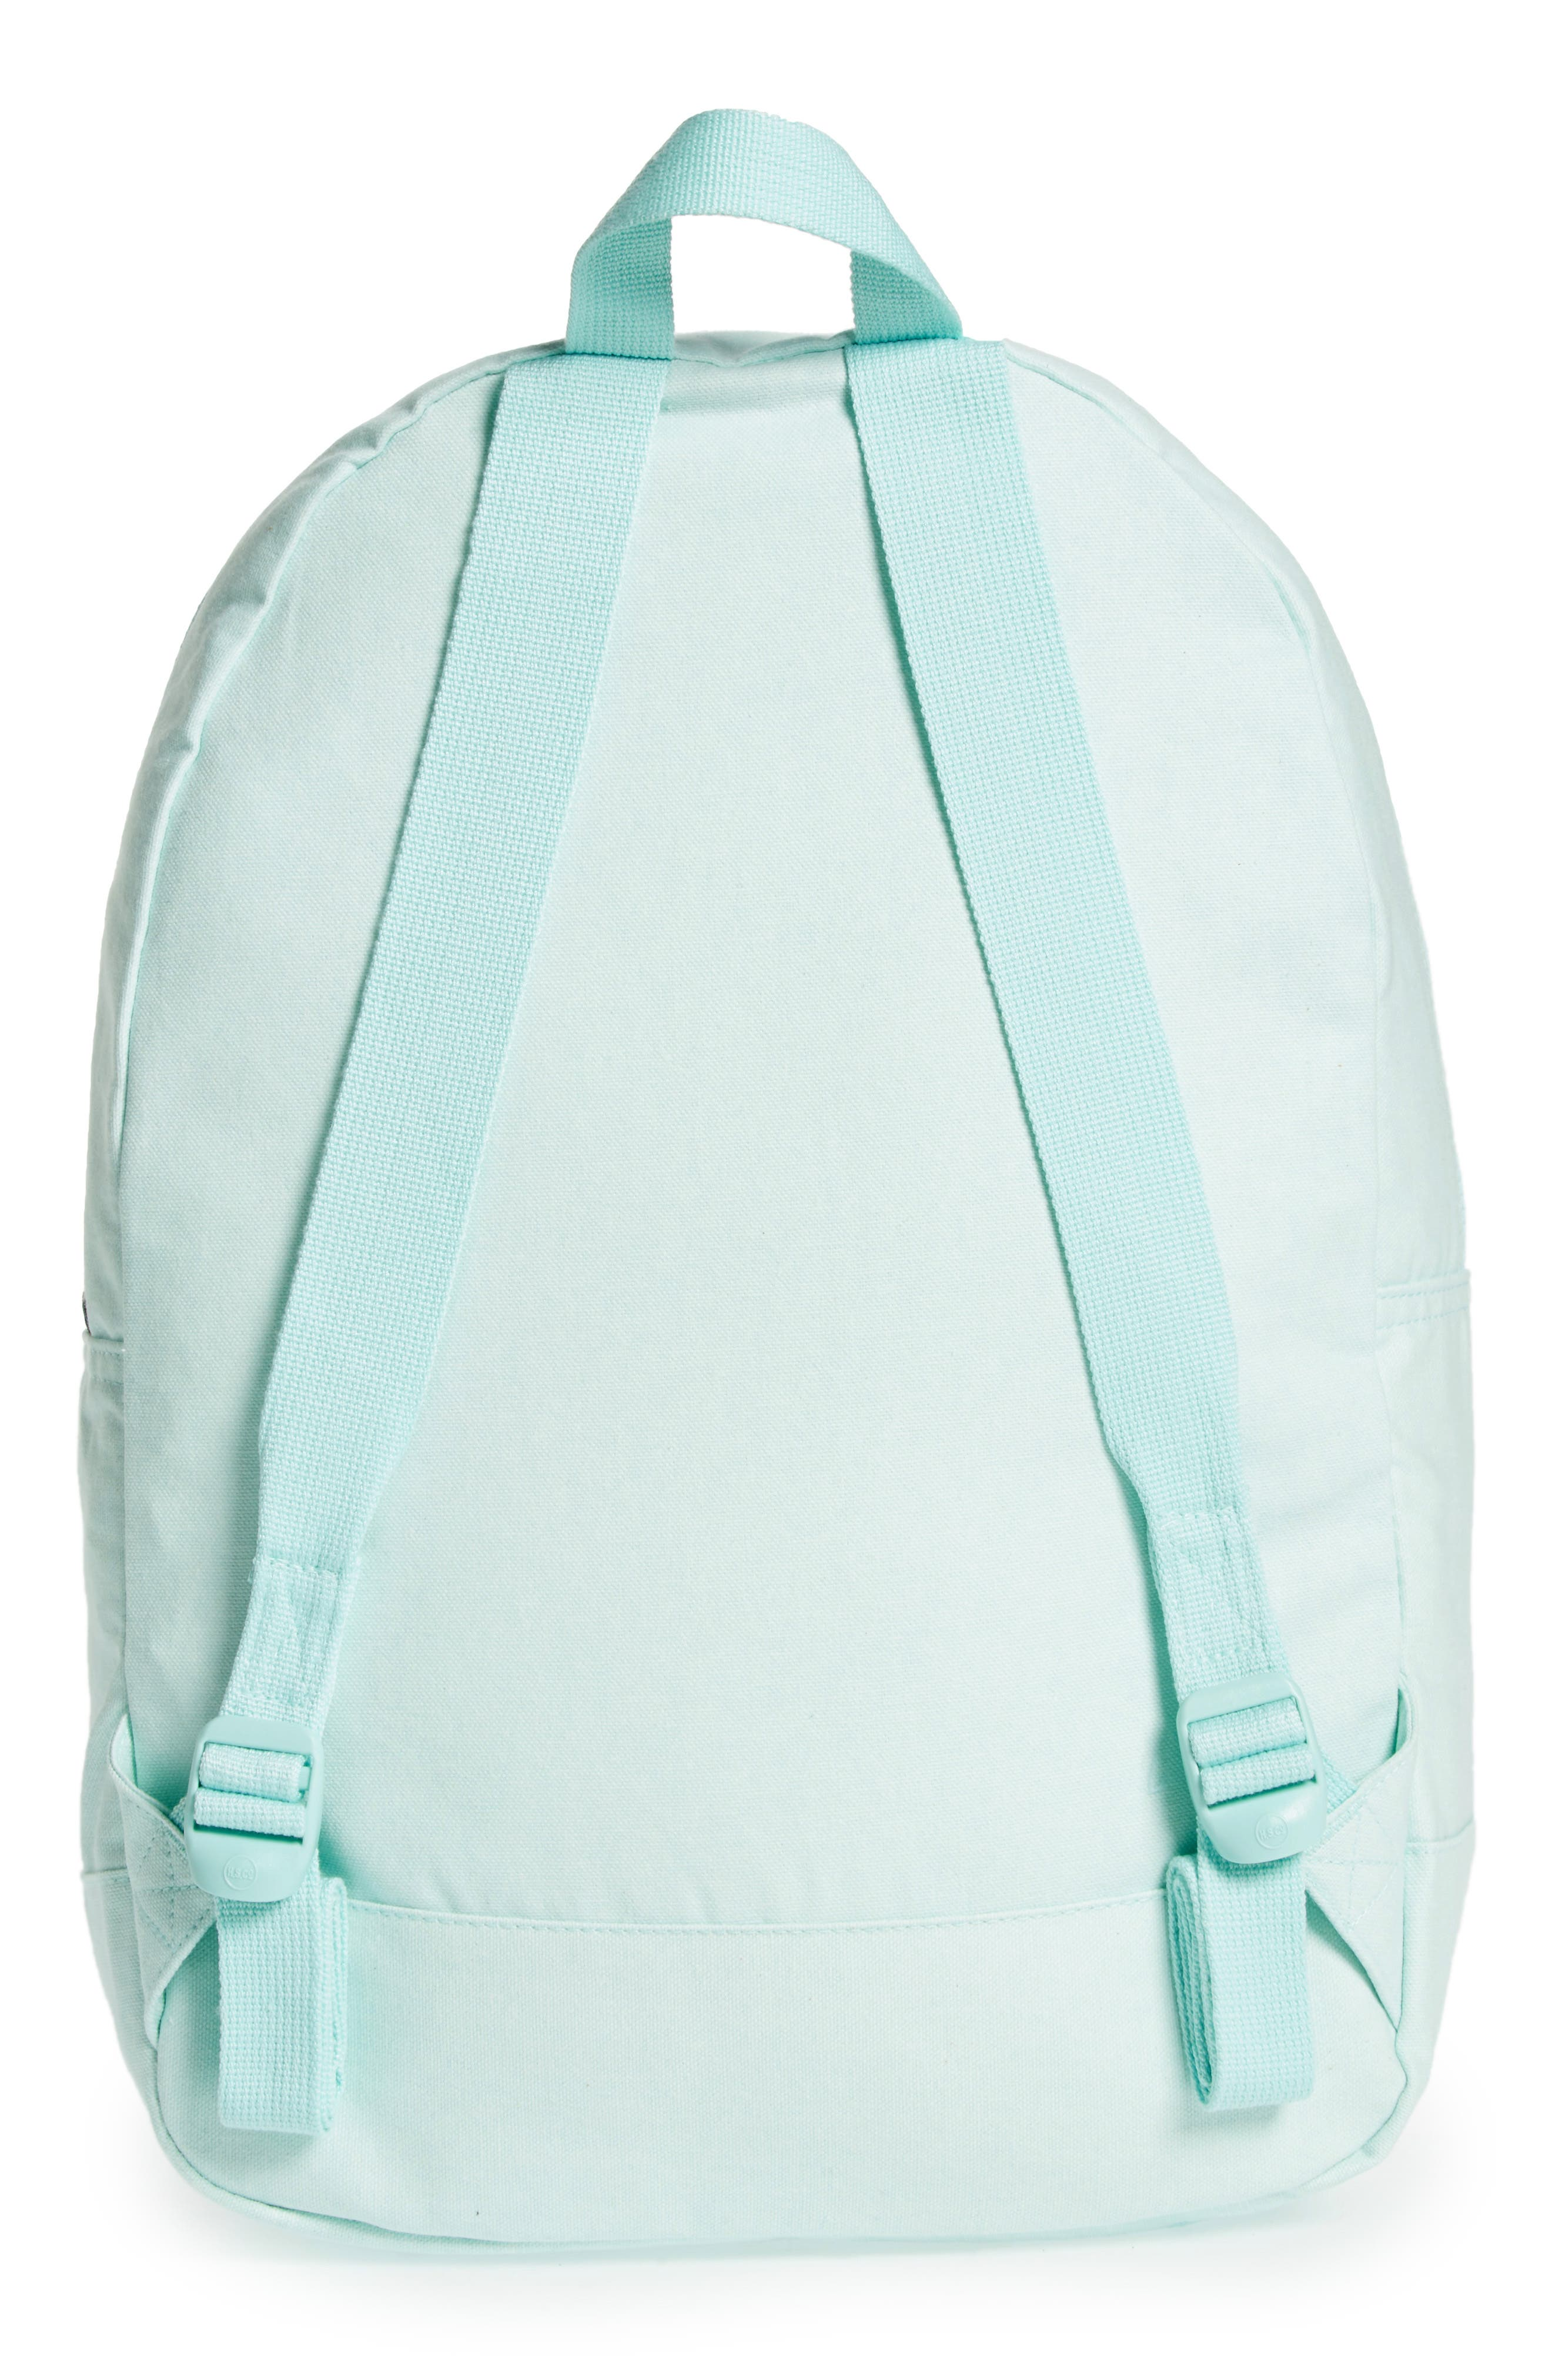 Cotton Casuals Daypack Backpack,                             Alternate thumbnail 25, color,